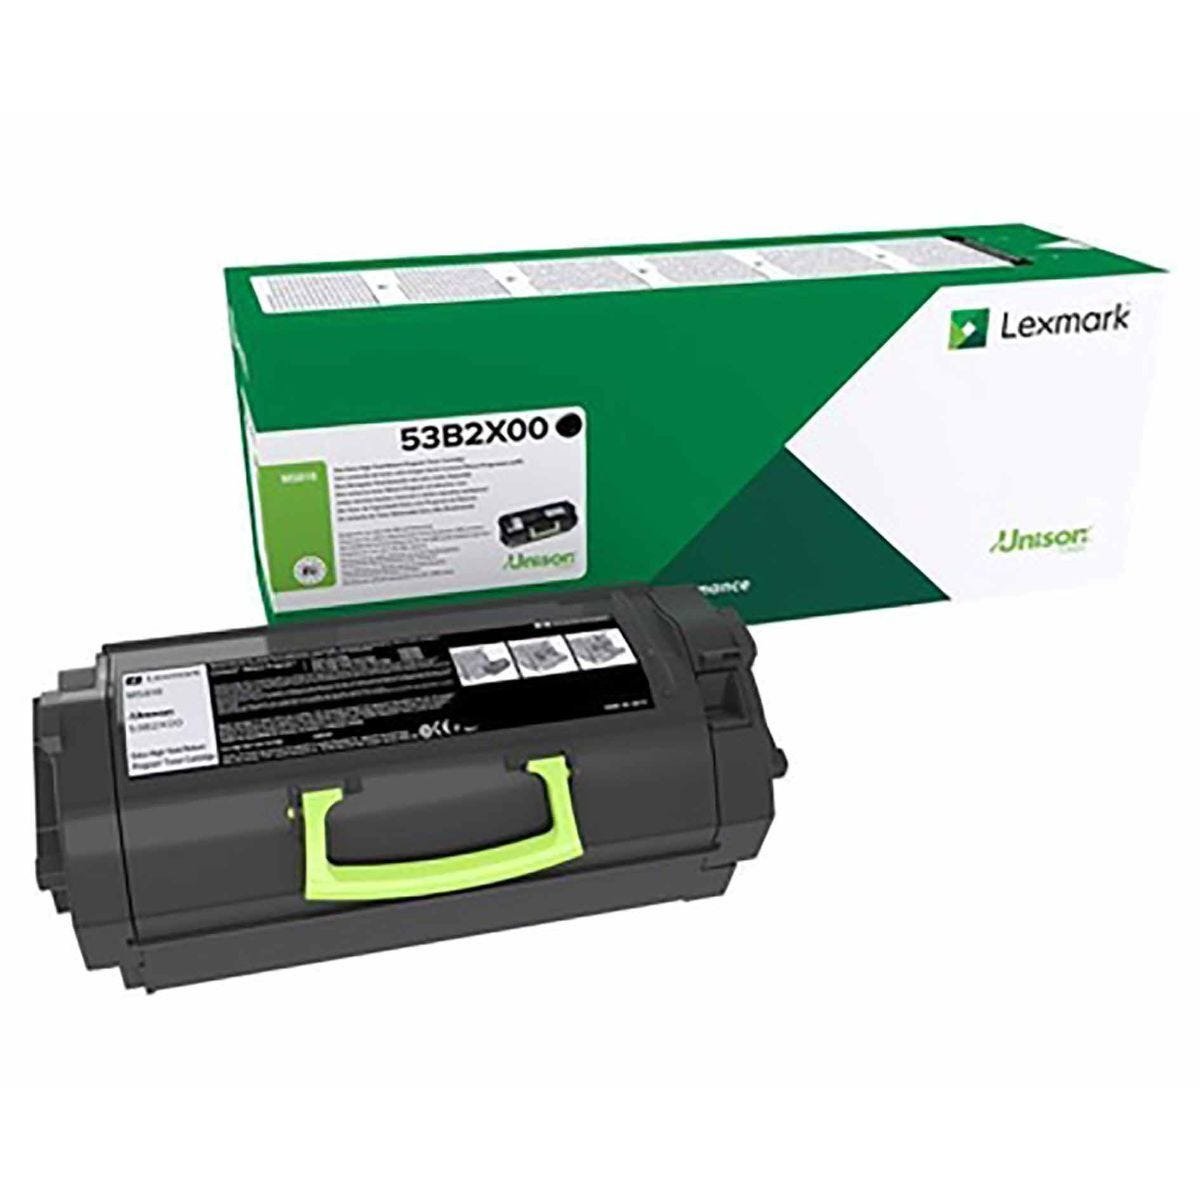 Lexmark MS818 Extra High Yield Black Original Toner Cartridge